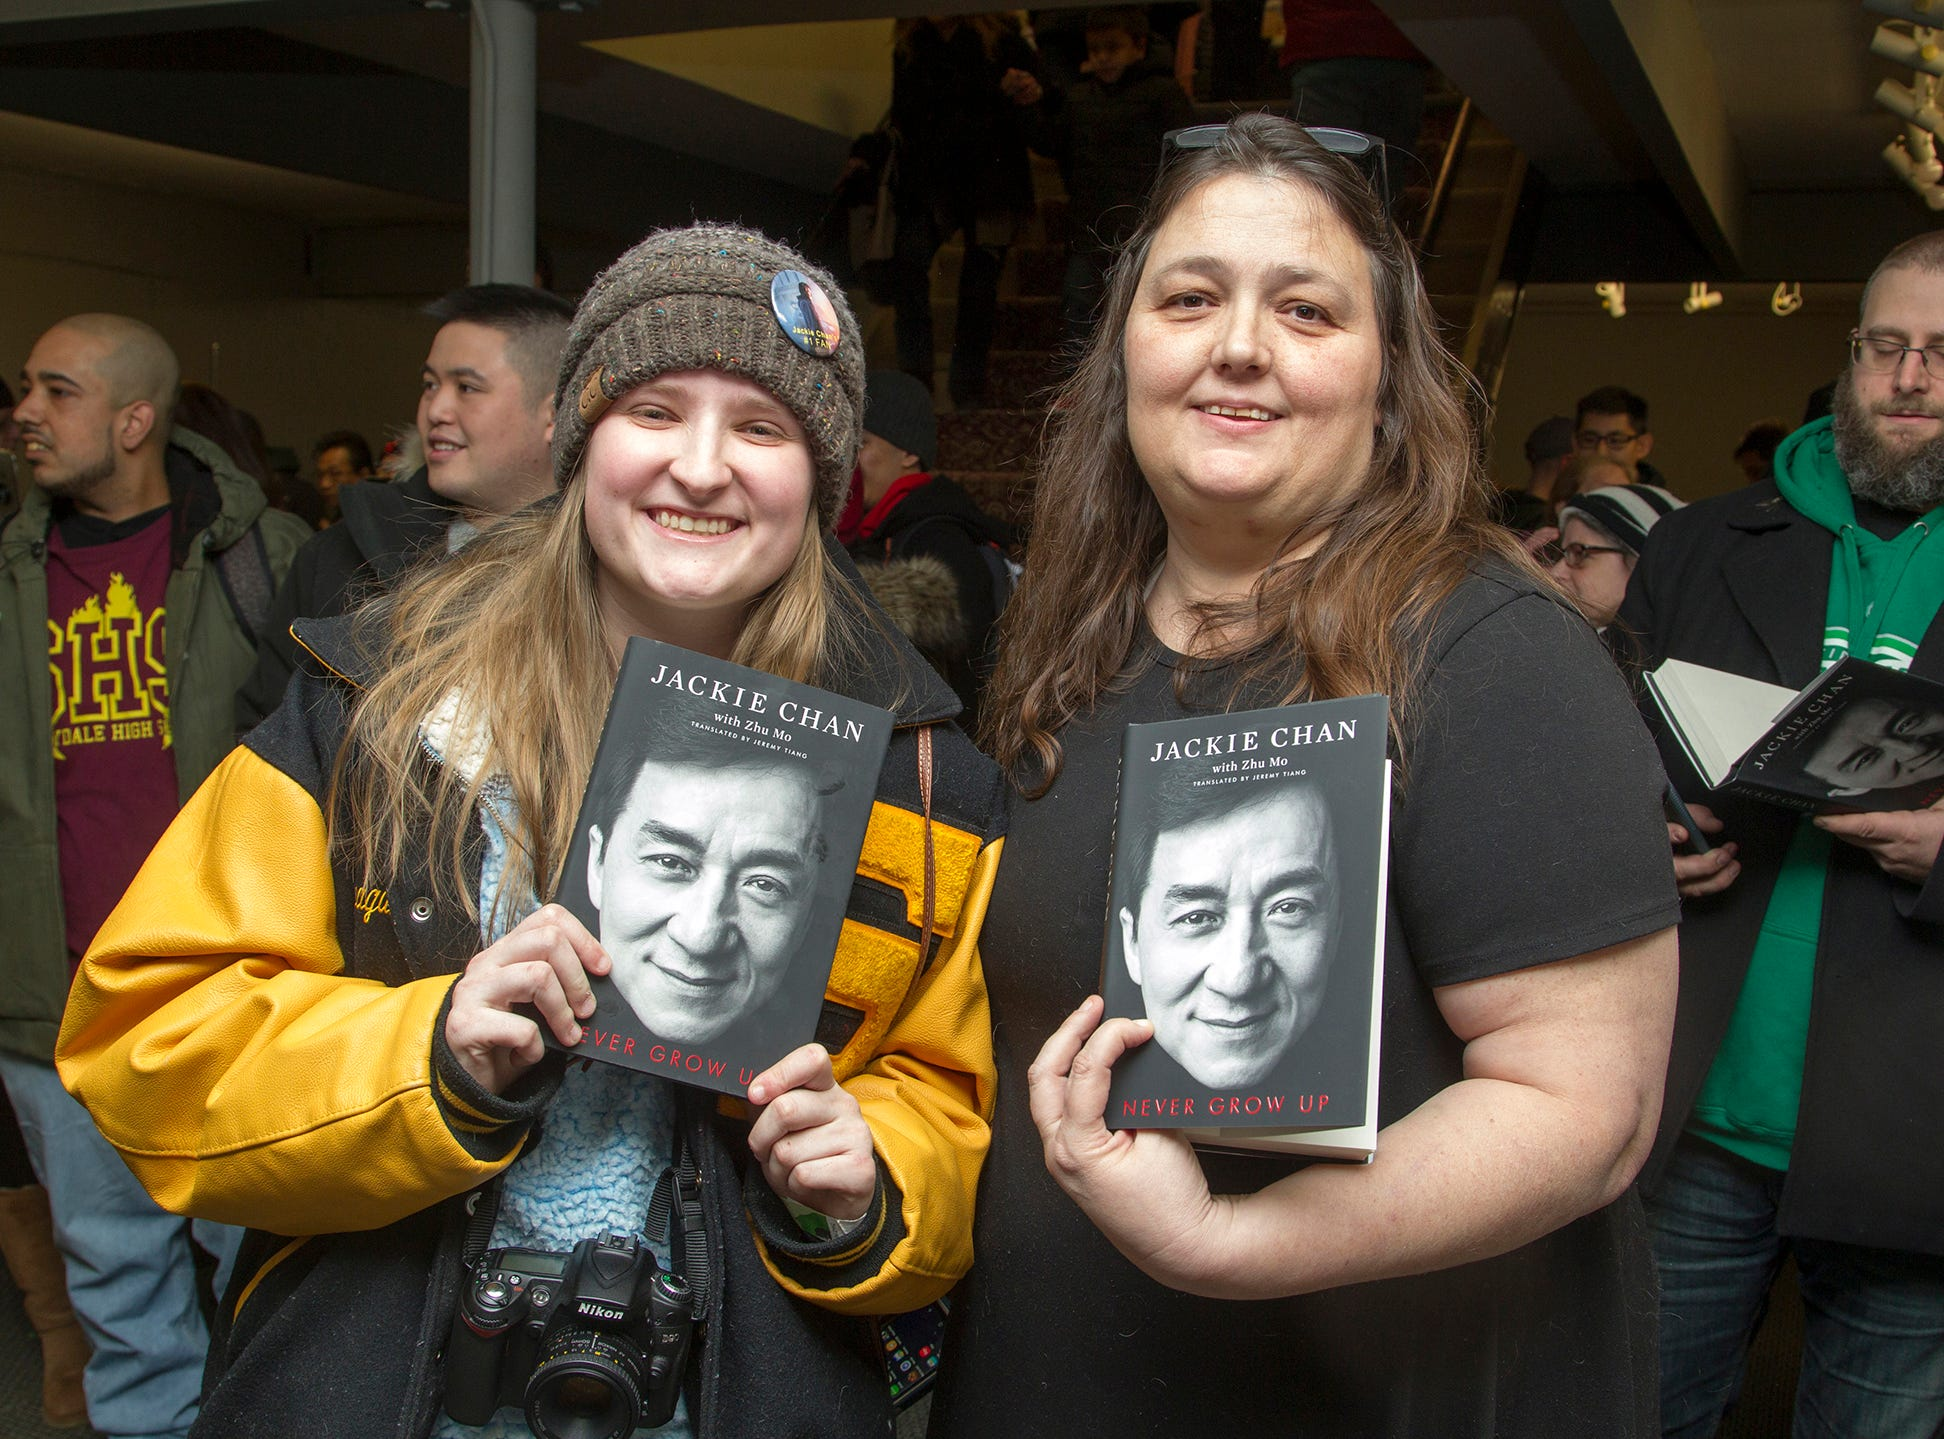 """Camille and Stacy. Jackie Chan greets fans at Bookends in Ridgewood while signing his new book, """"Never Grow Up."""" 01/21/2019"""